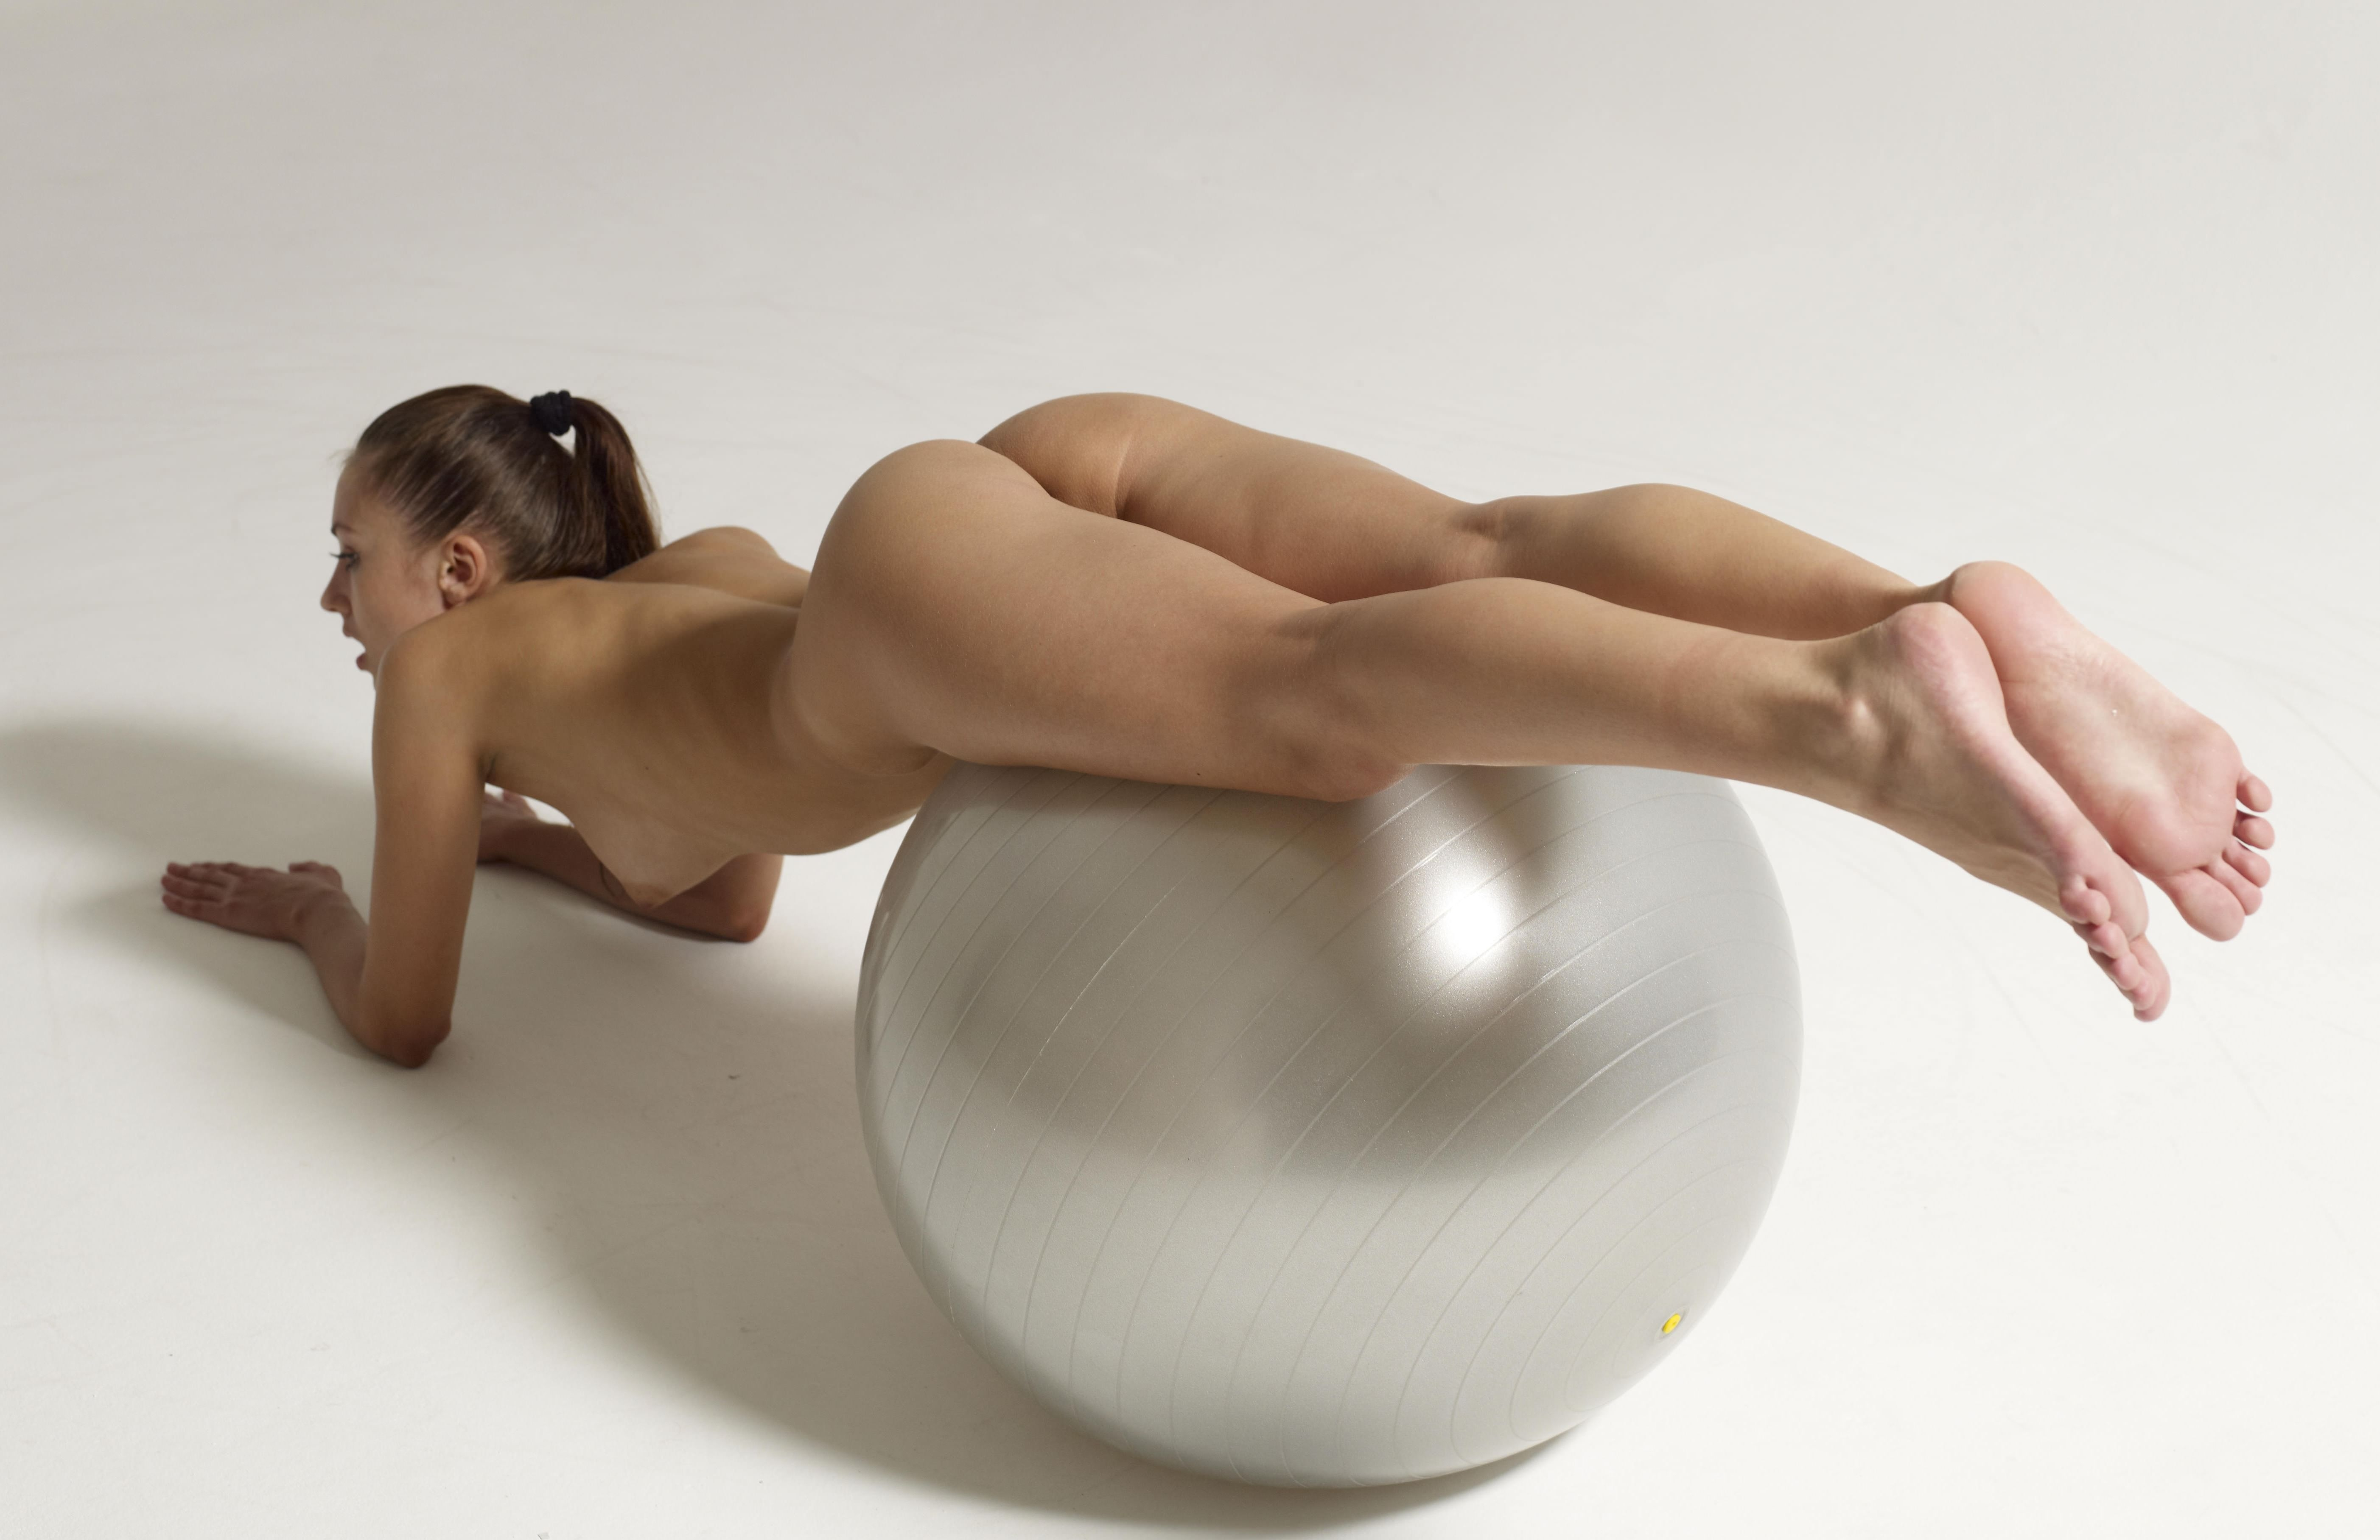 Nude girl curled up in a ball